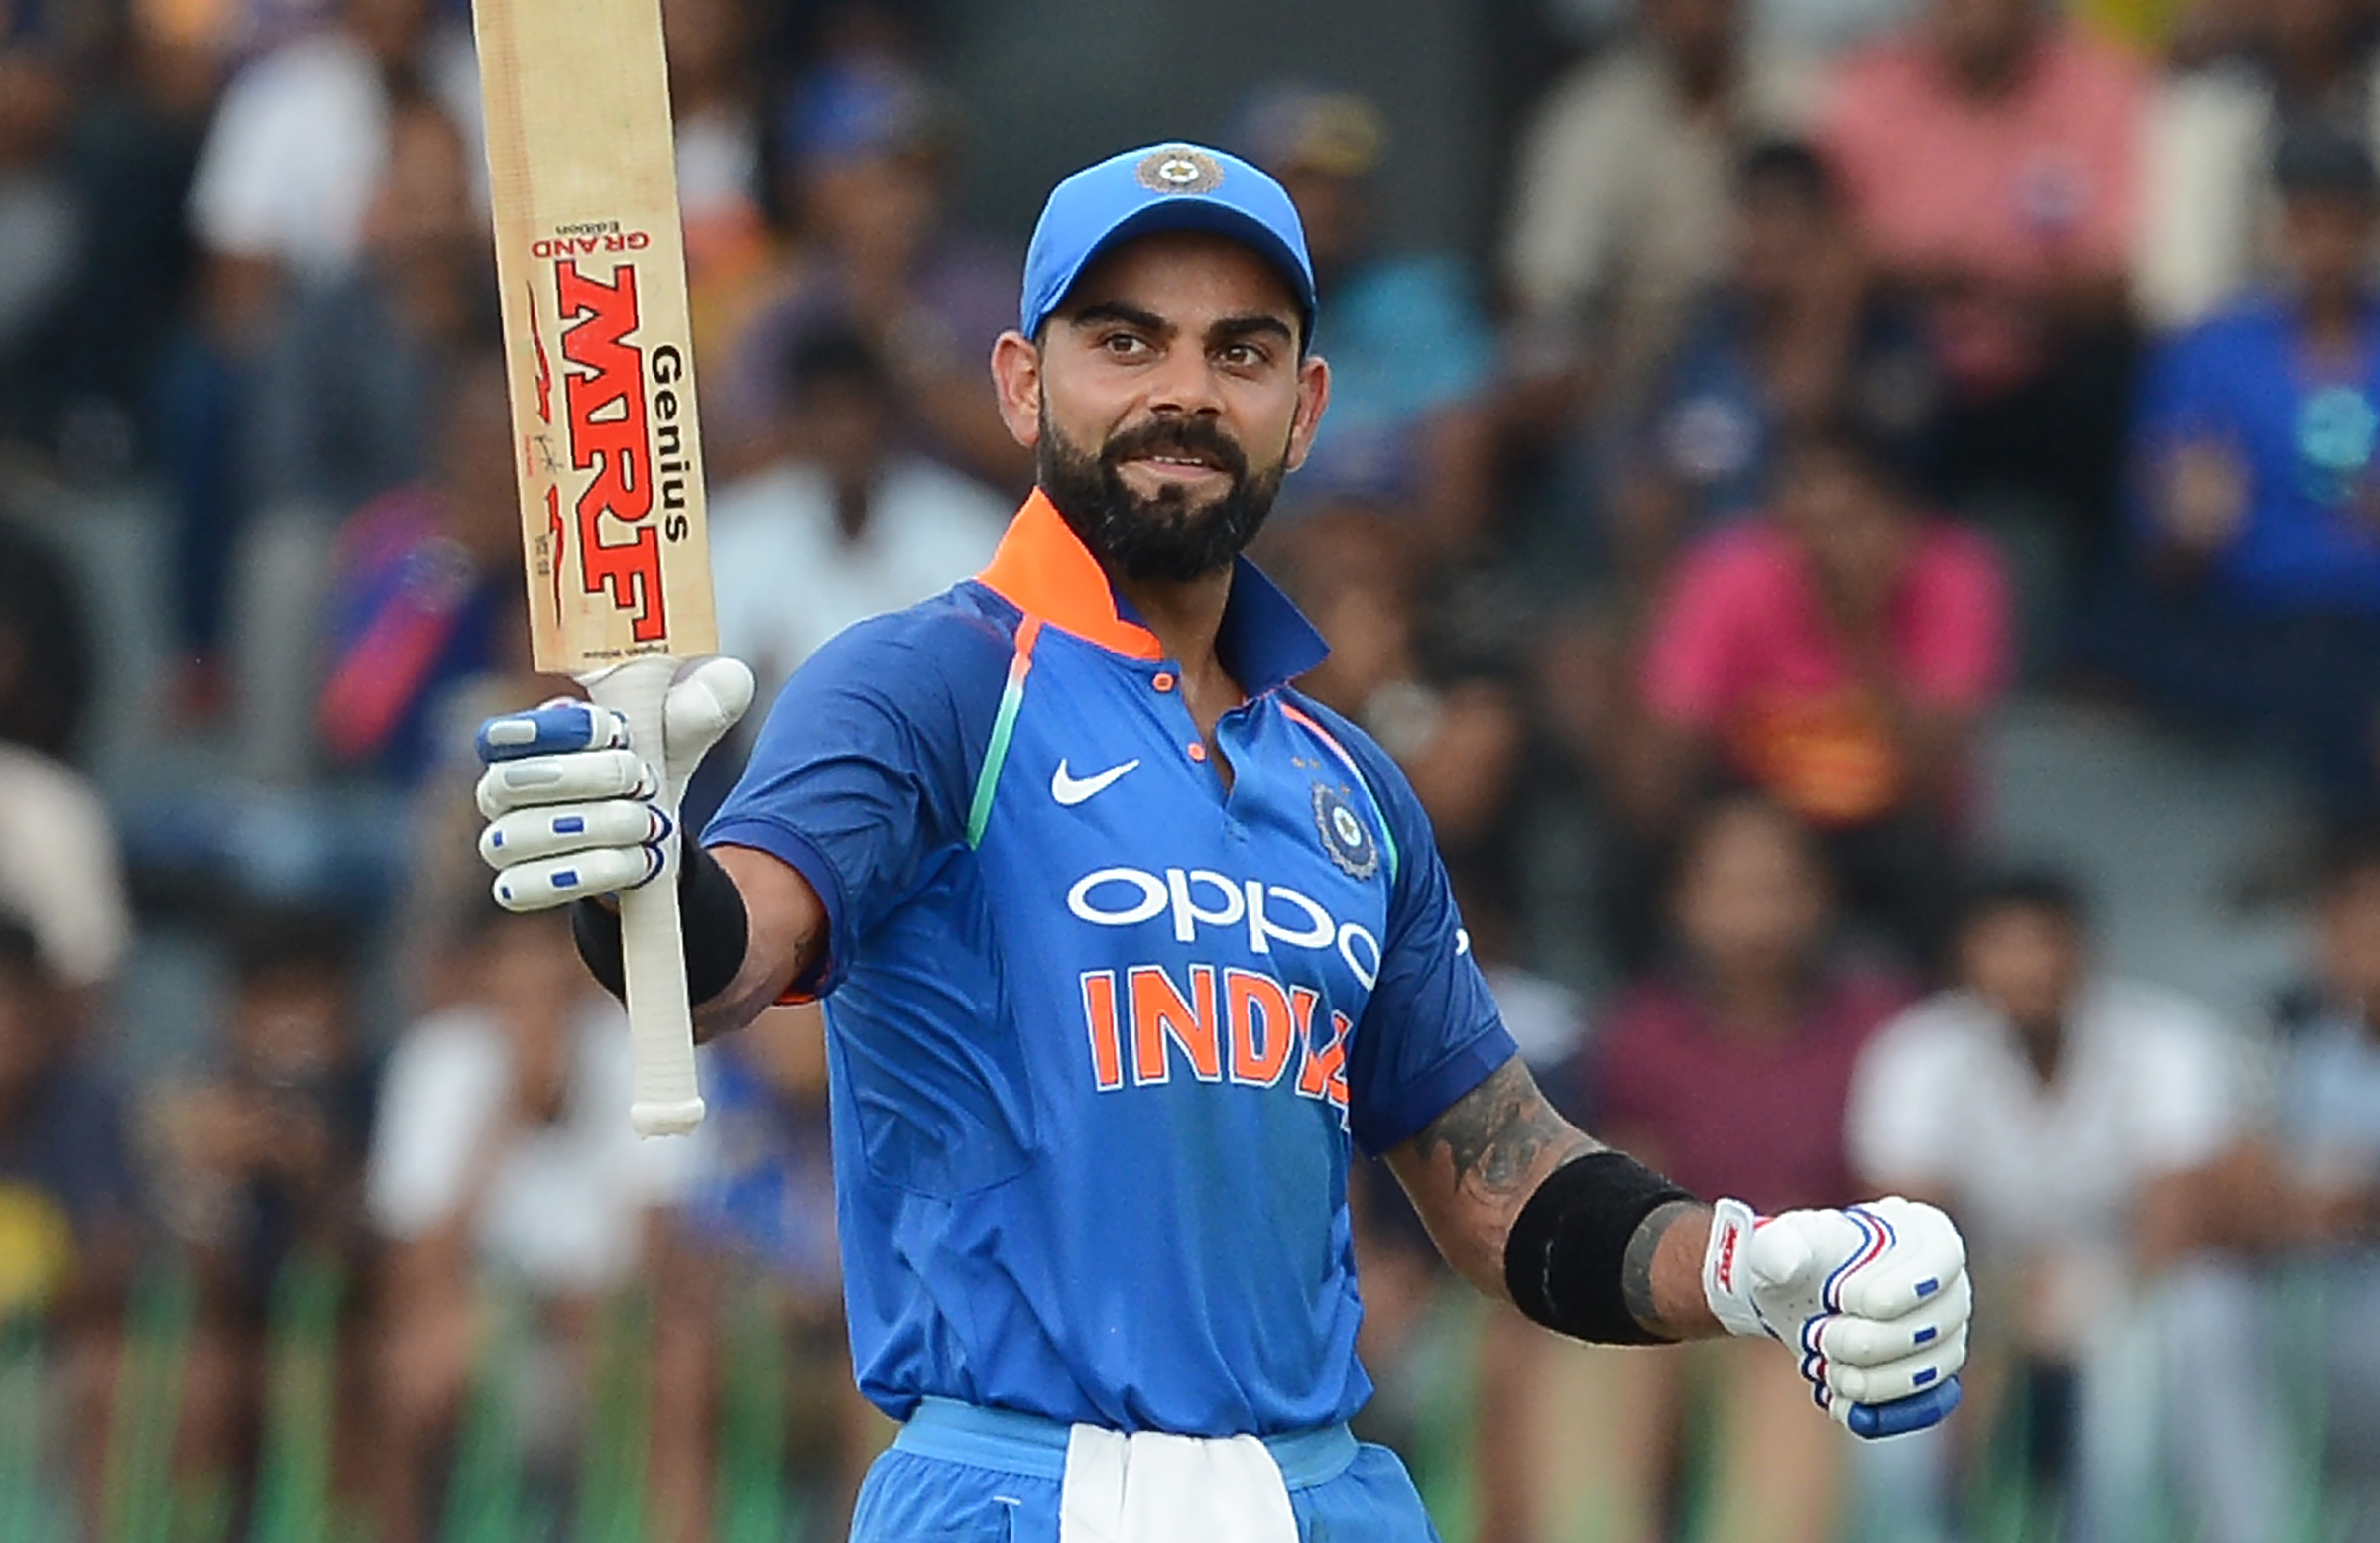 virat kohli vs sachin tendulkar, virat kohli 10 thousands odi runs, virat kohli, sachin tendulkar, odi world record, Ind vs WI 2nd ODI, fastest 10 thousands odi runs, sports News